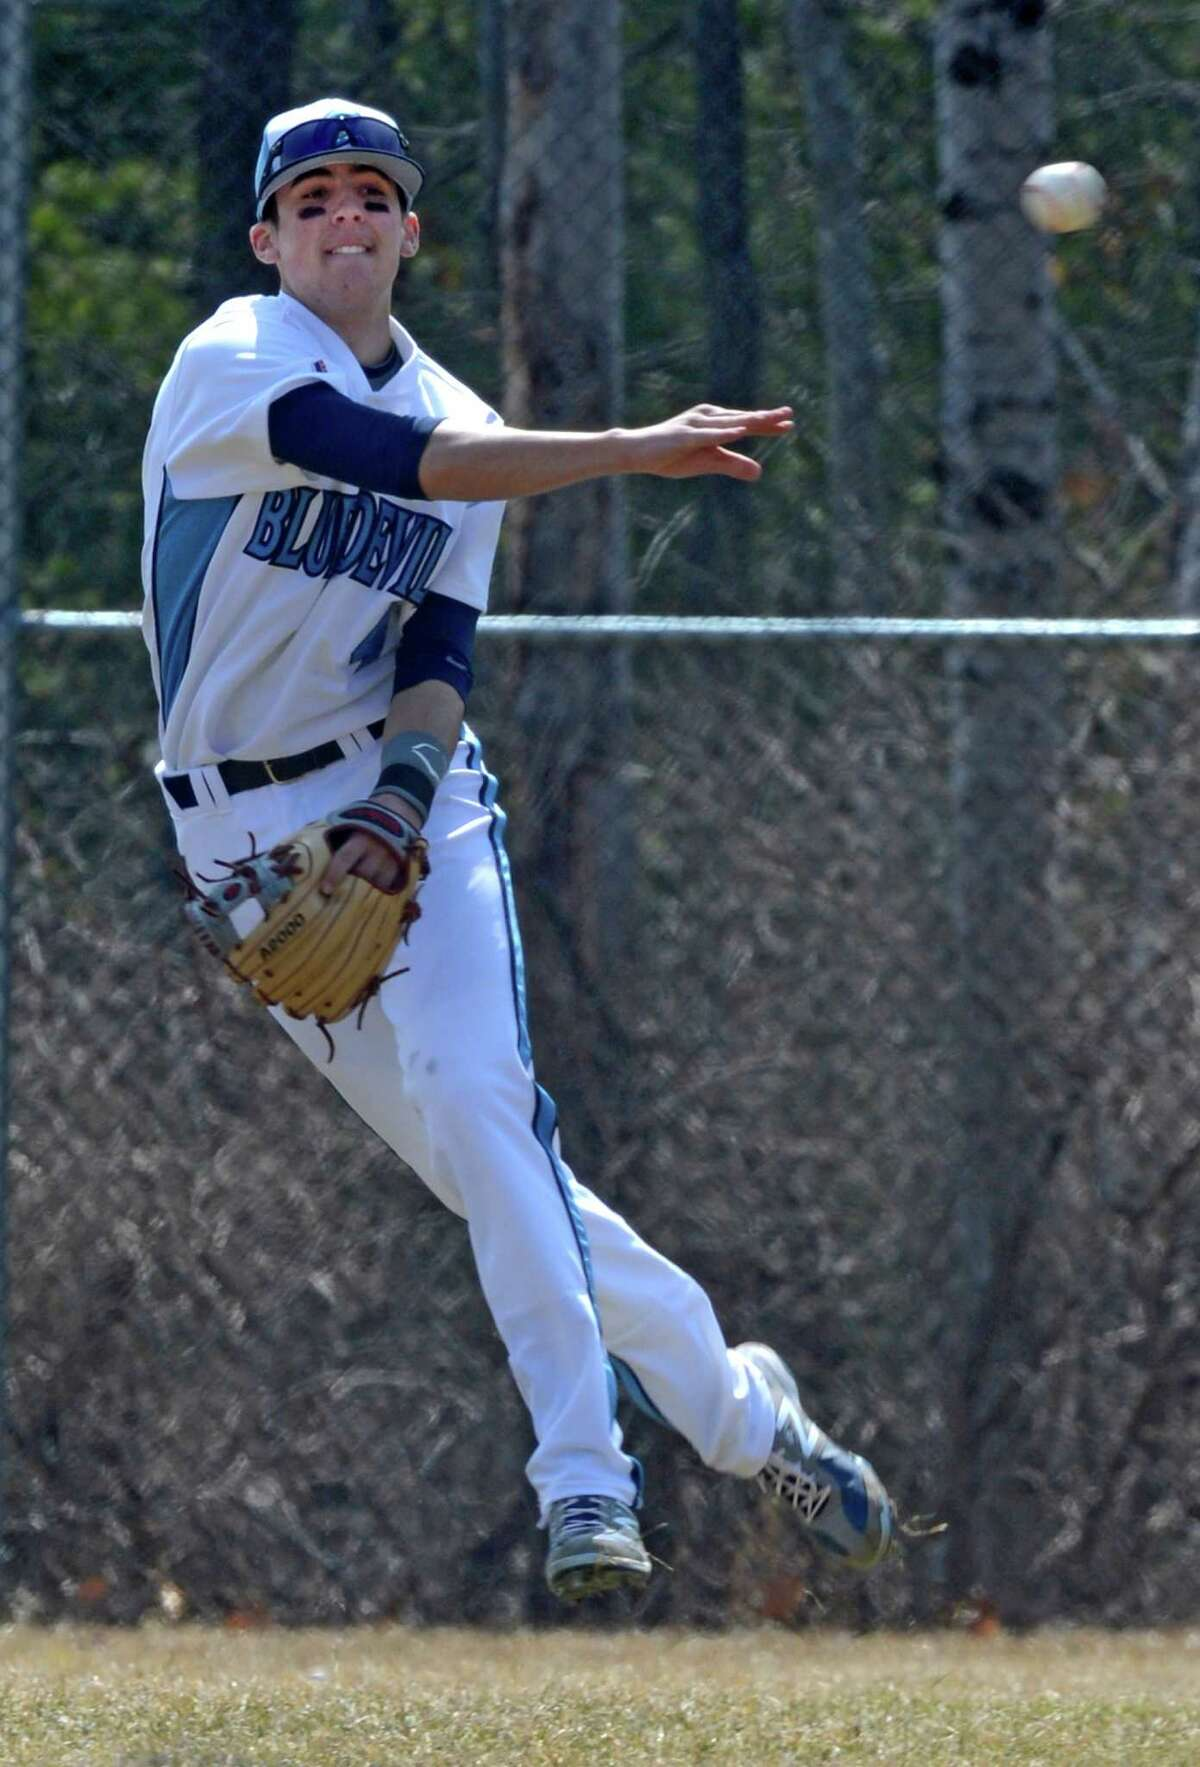 Columbia's Kevin Smith was drafted by the Toronto Blue Jays in the fourth round of the 2017 MLB draft.